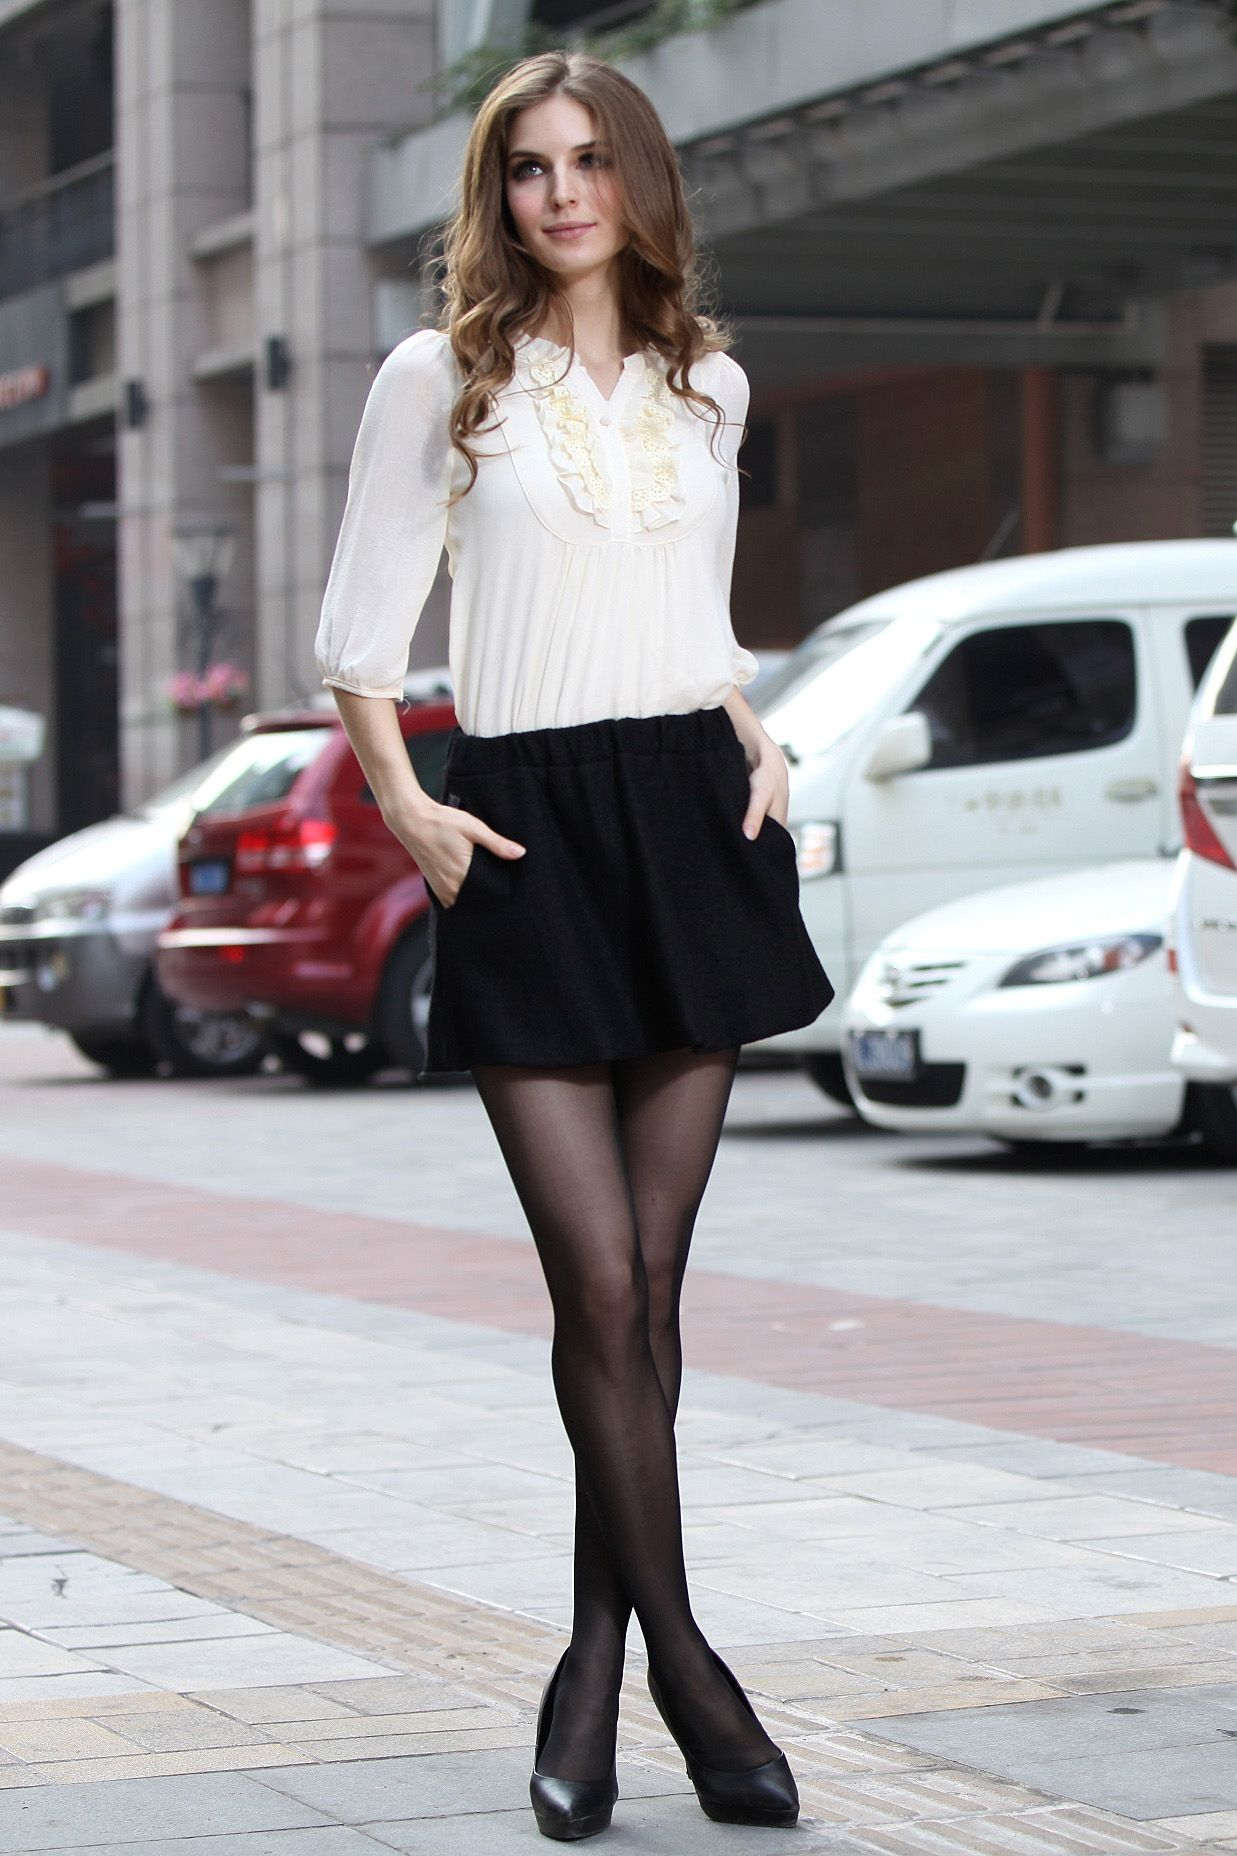 Sweet Apricot Chiffon Blouse Fashion Pics And More In